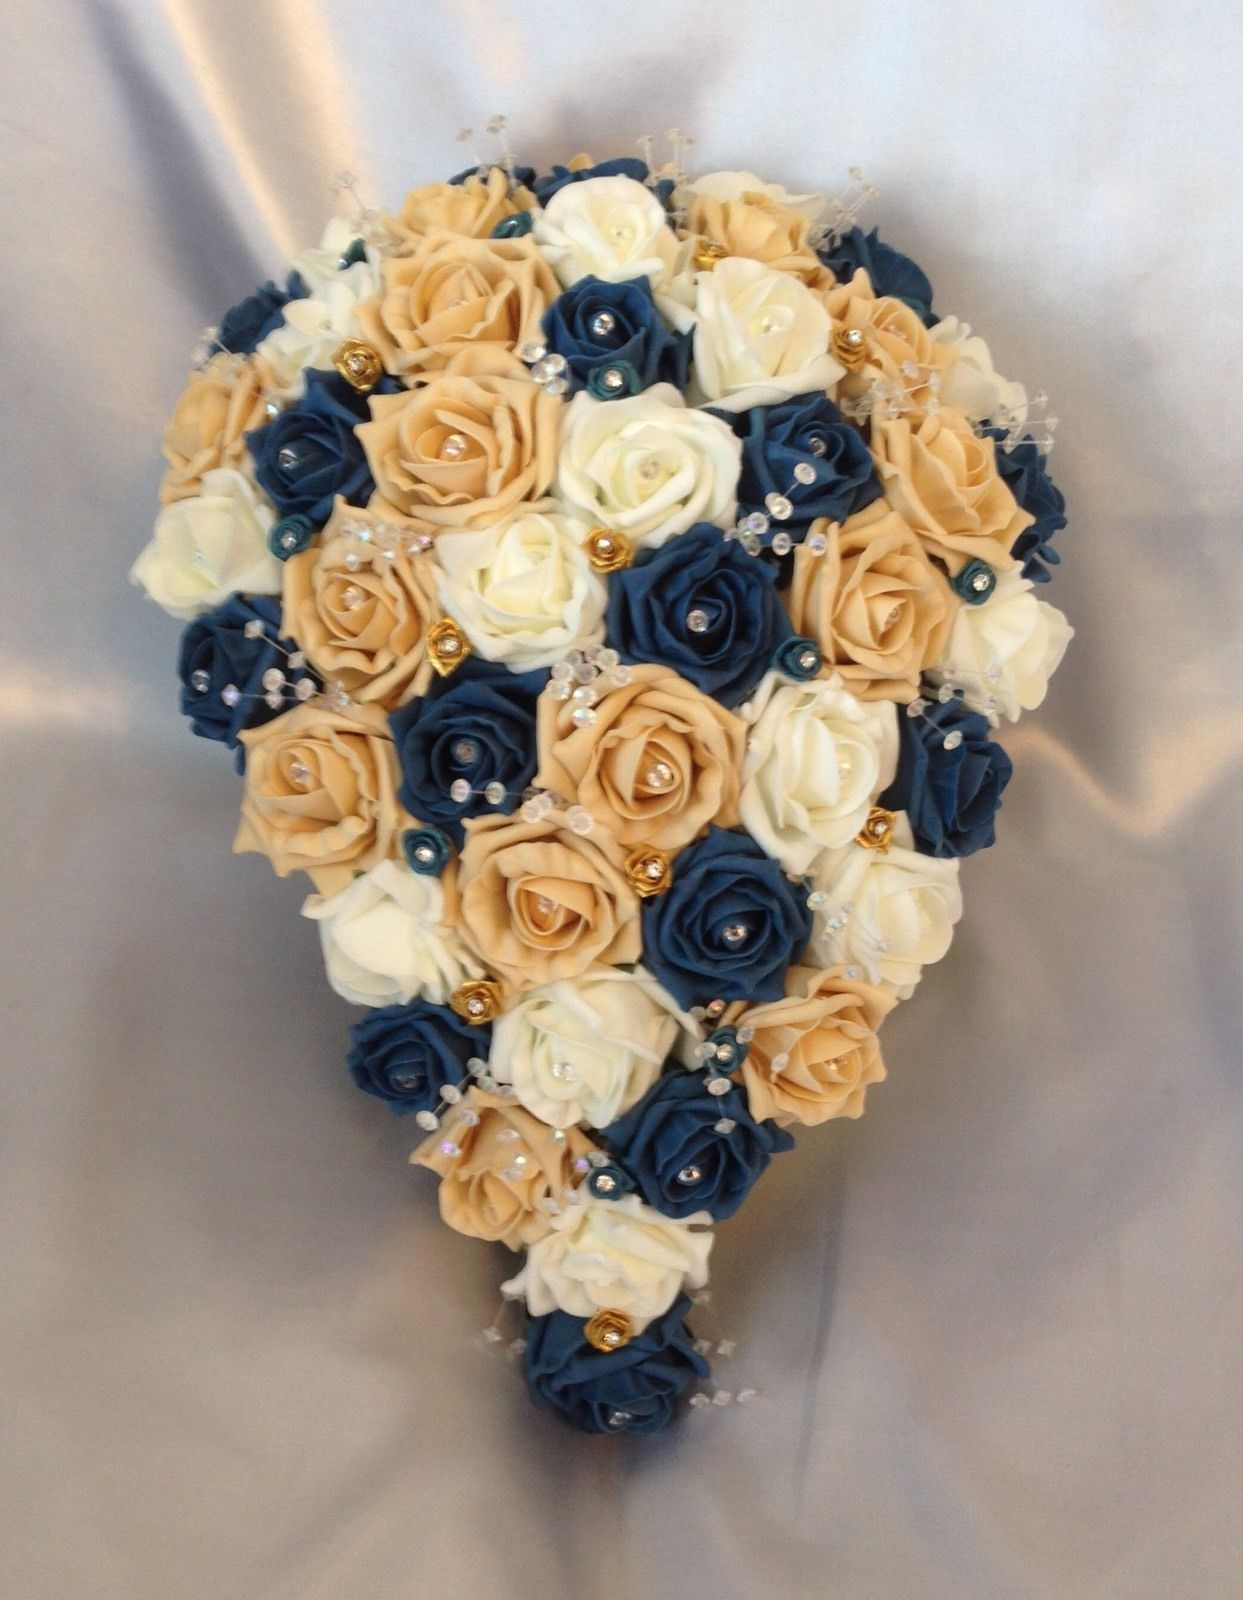 HANDTIED BRIDAL POSY WEDDING BOUQUET PEARLS AND DIAMANTE TEAL AND IVORY